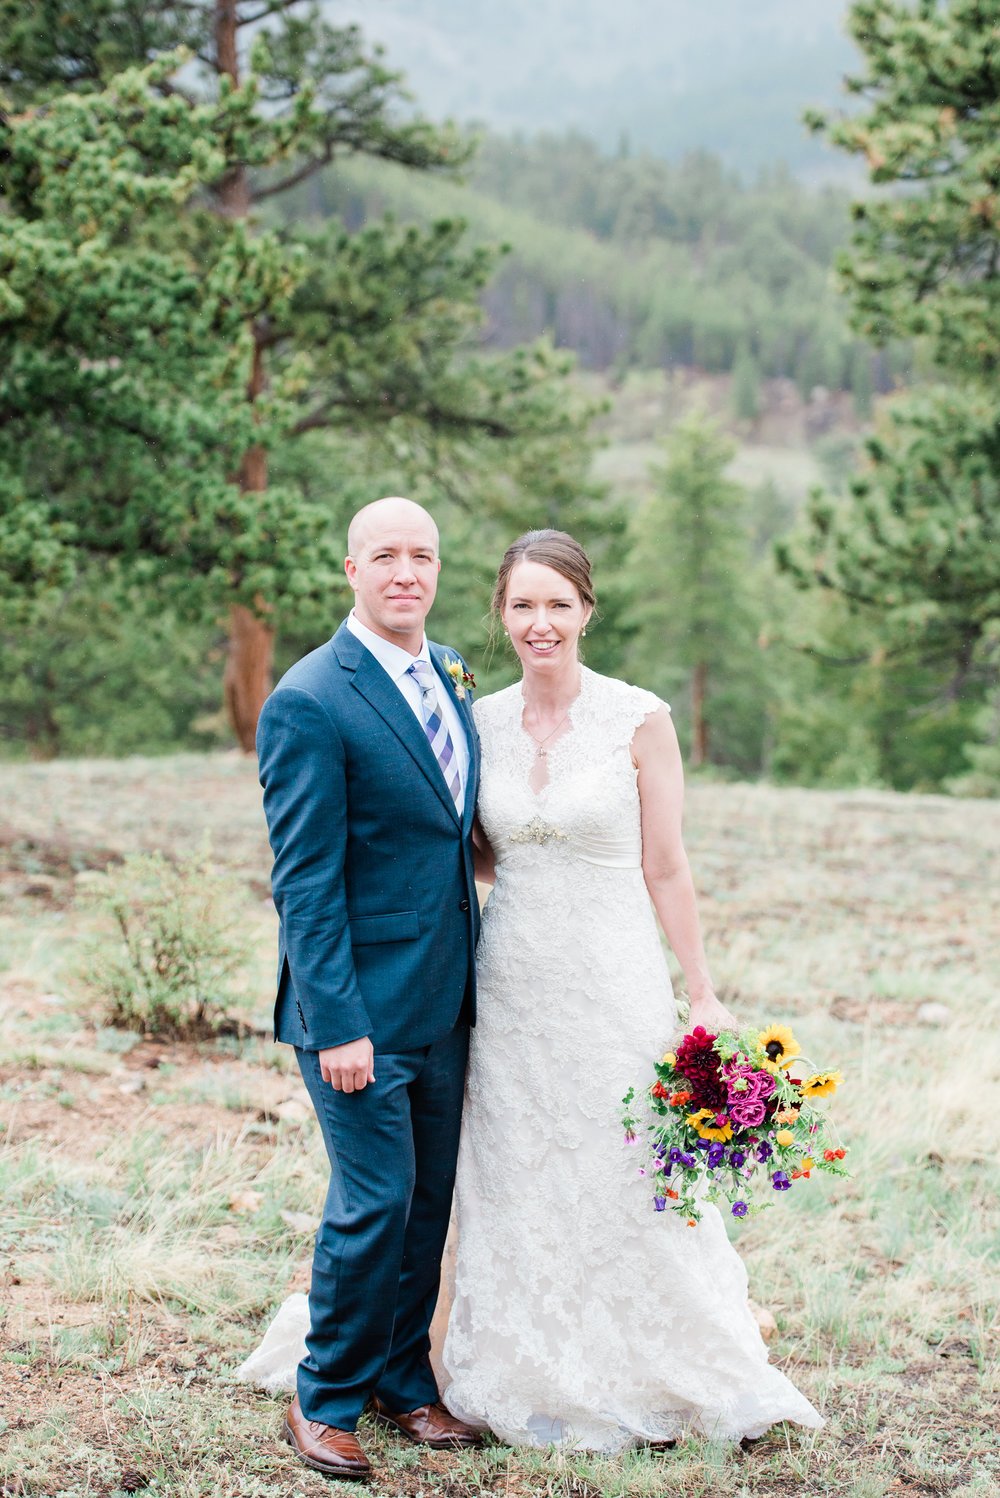 AshleighMillerPhotography-Weddings-Emily-Joe-EstesPark-Colorao-2159.jpg